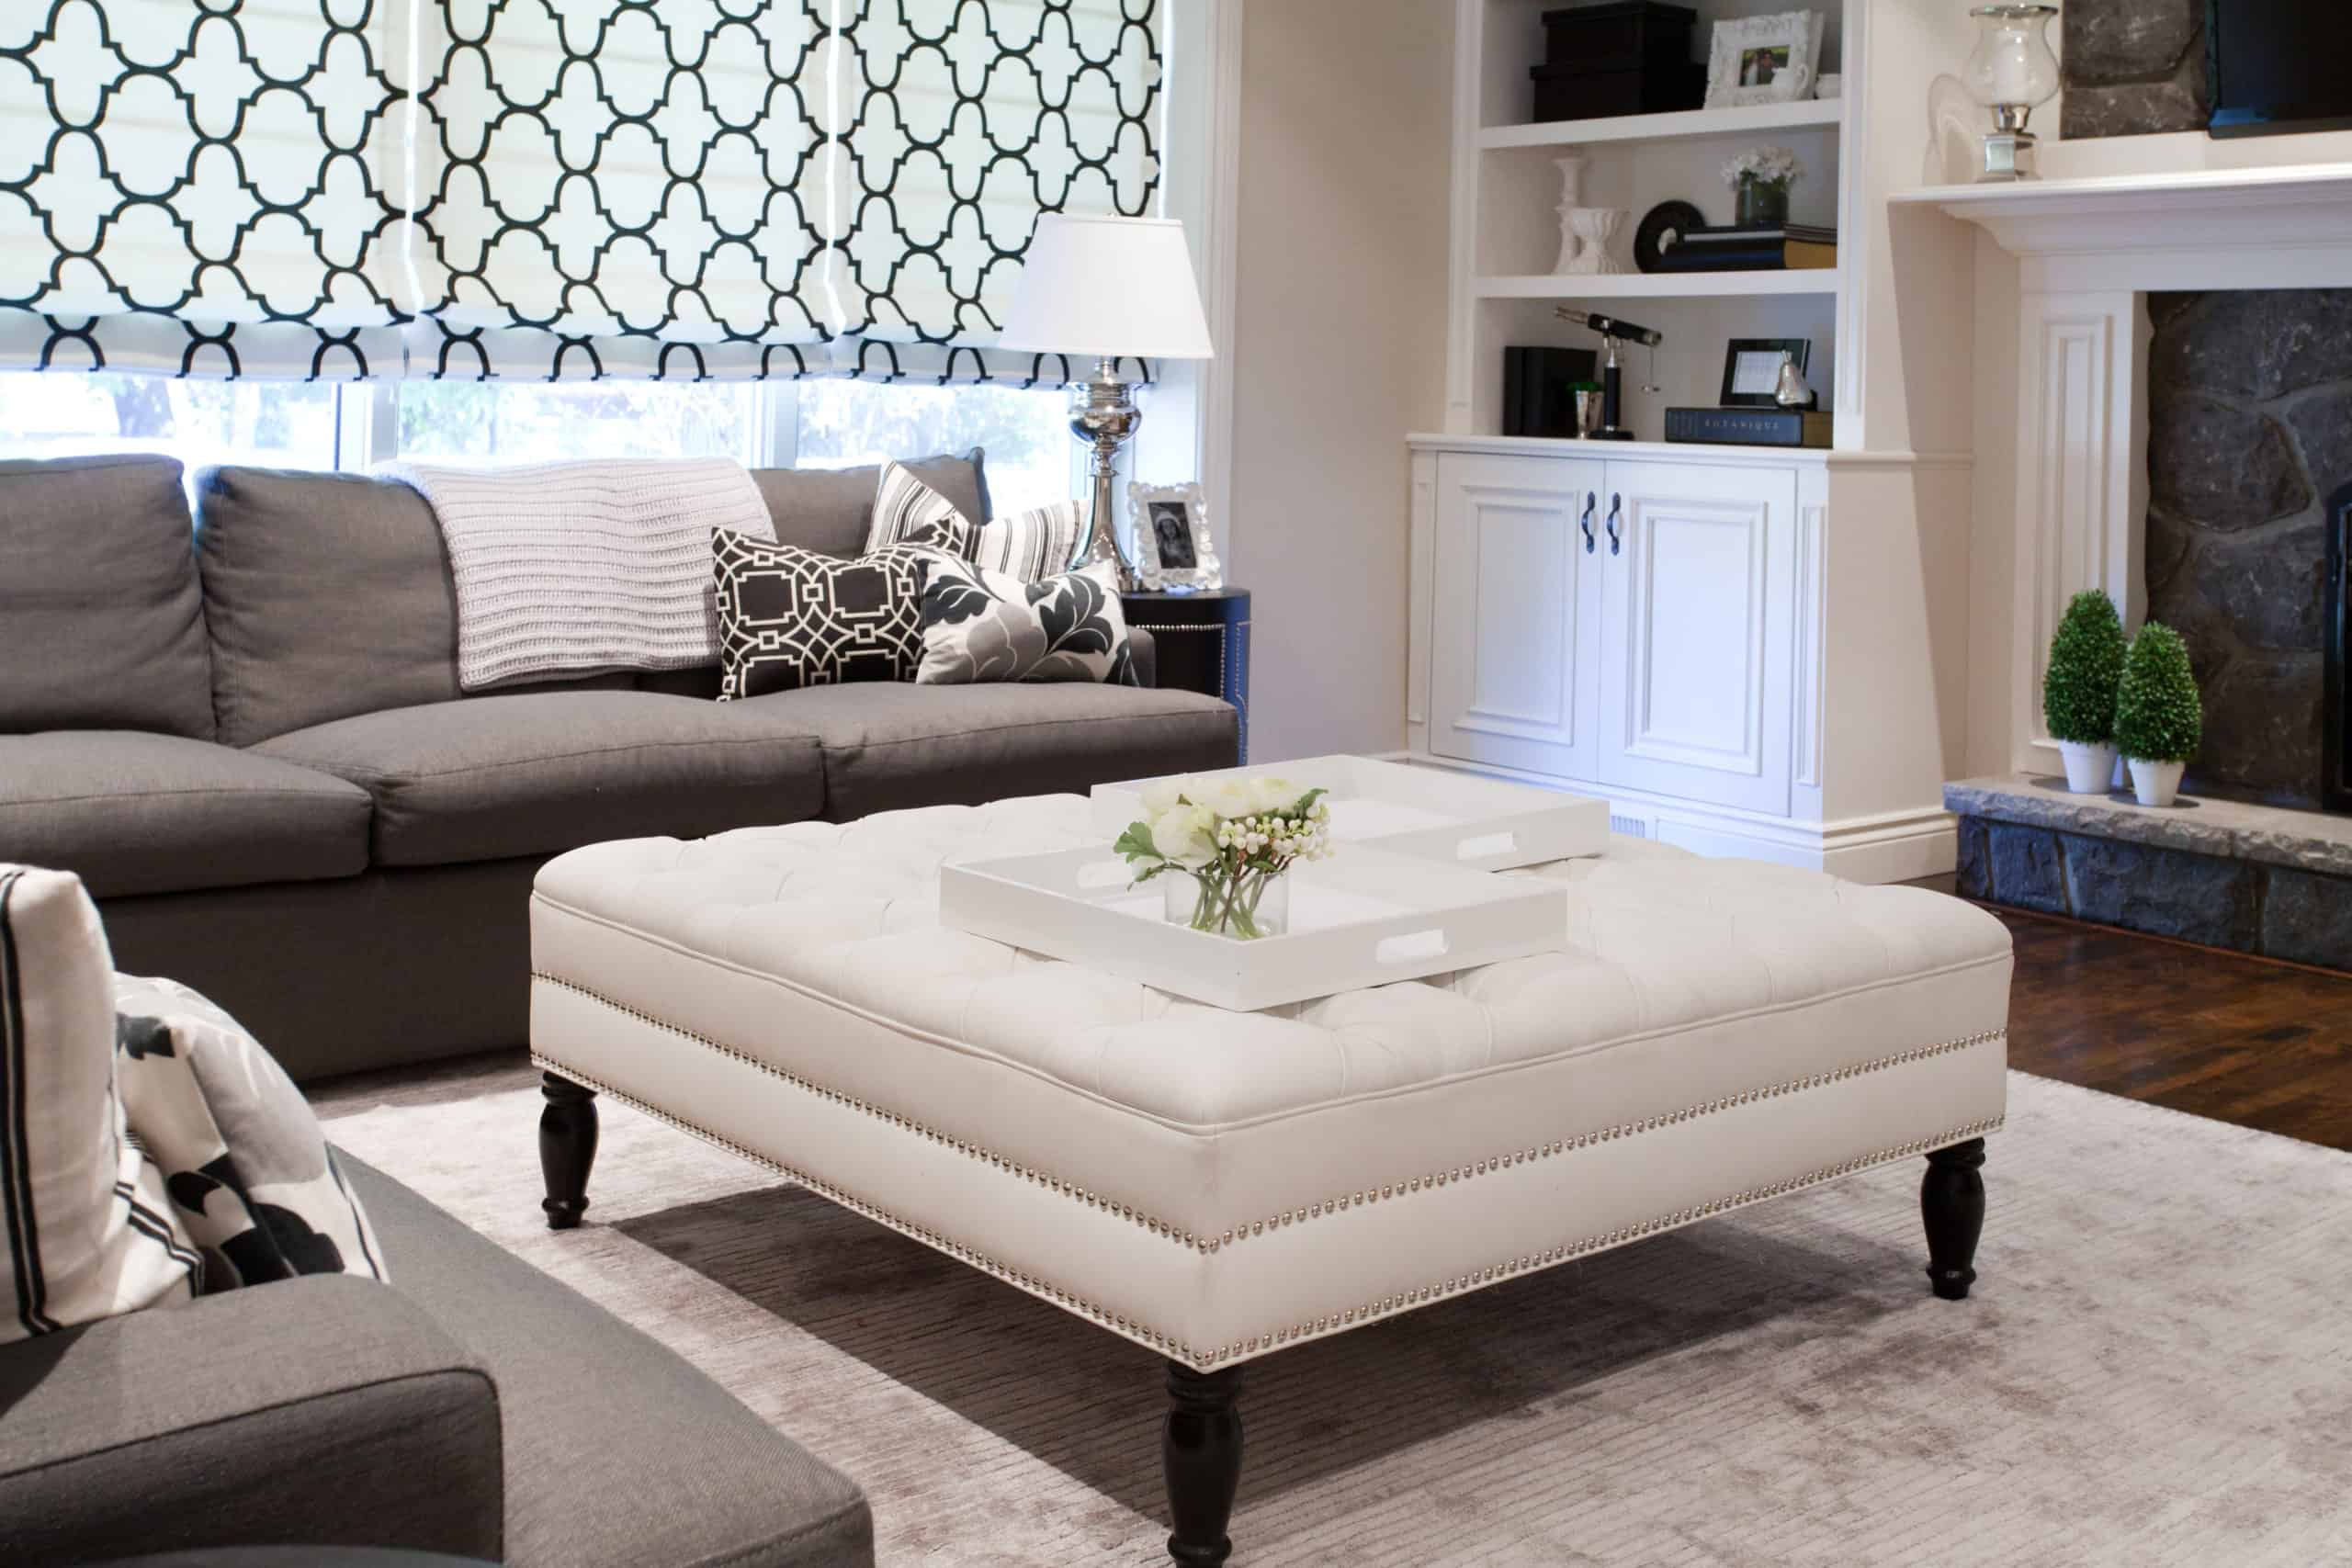 Large, modern living room with a focus on the white ottoman